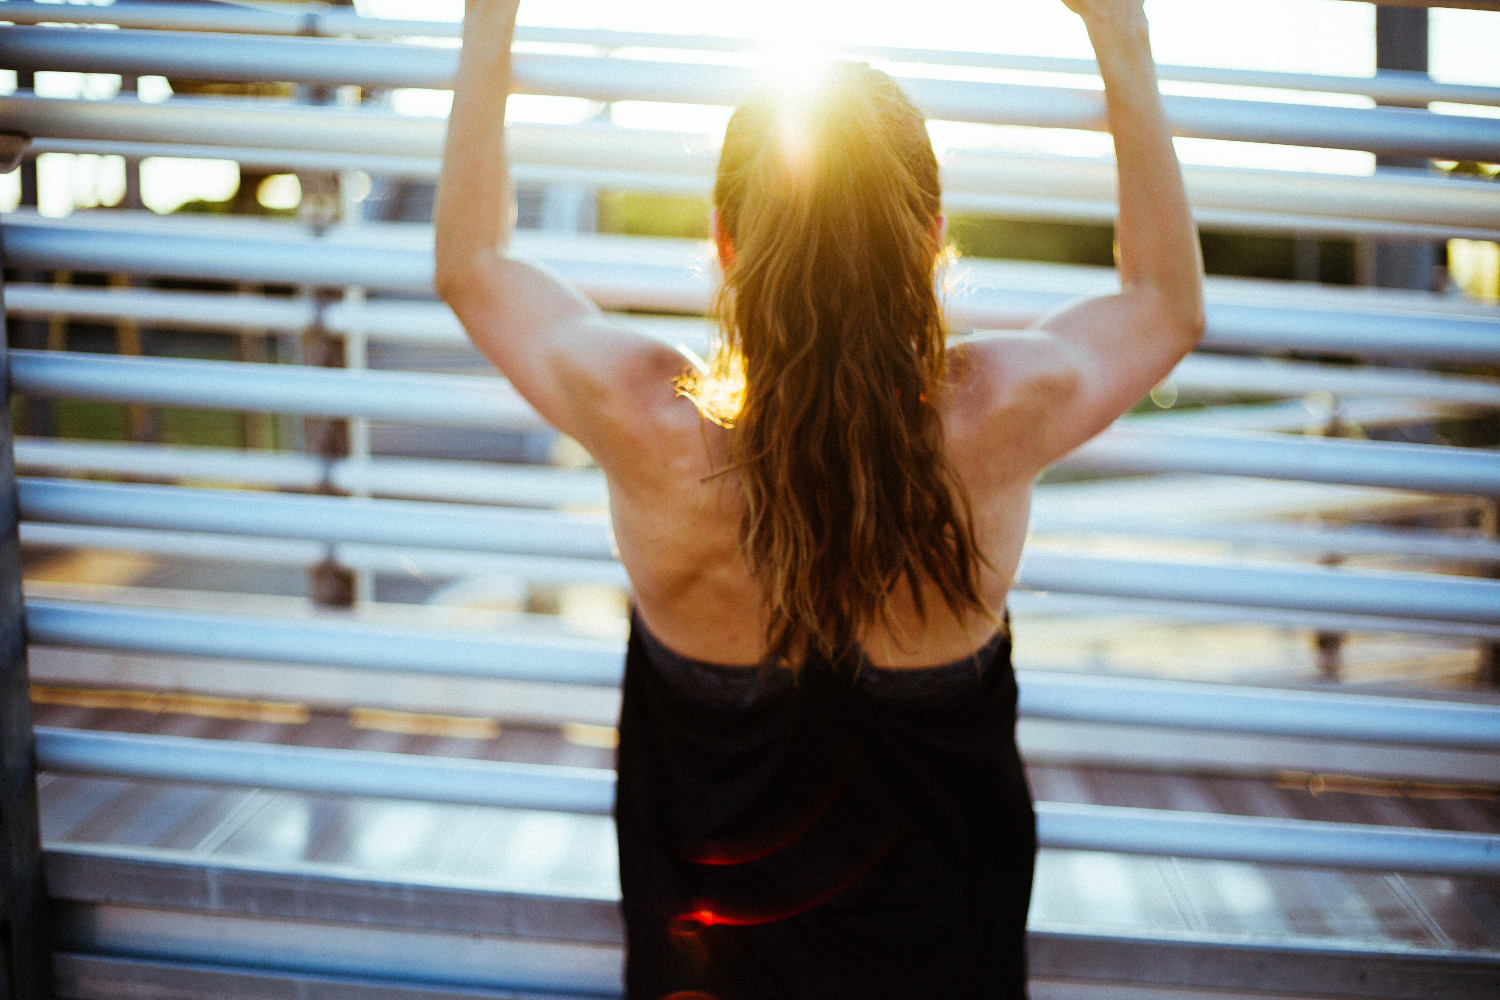 How a longline exercise habit keeps you young